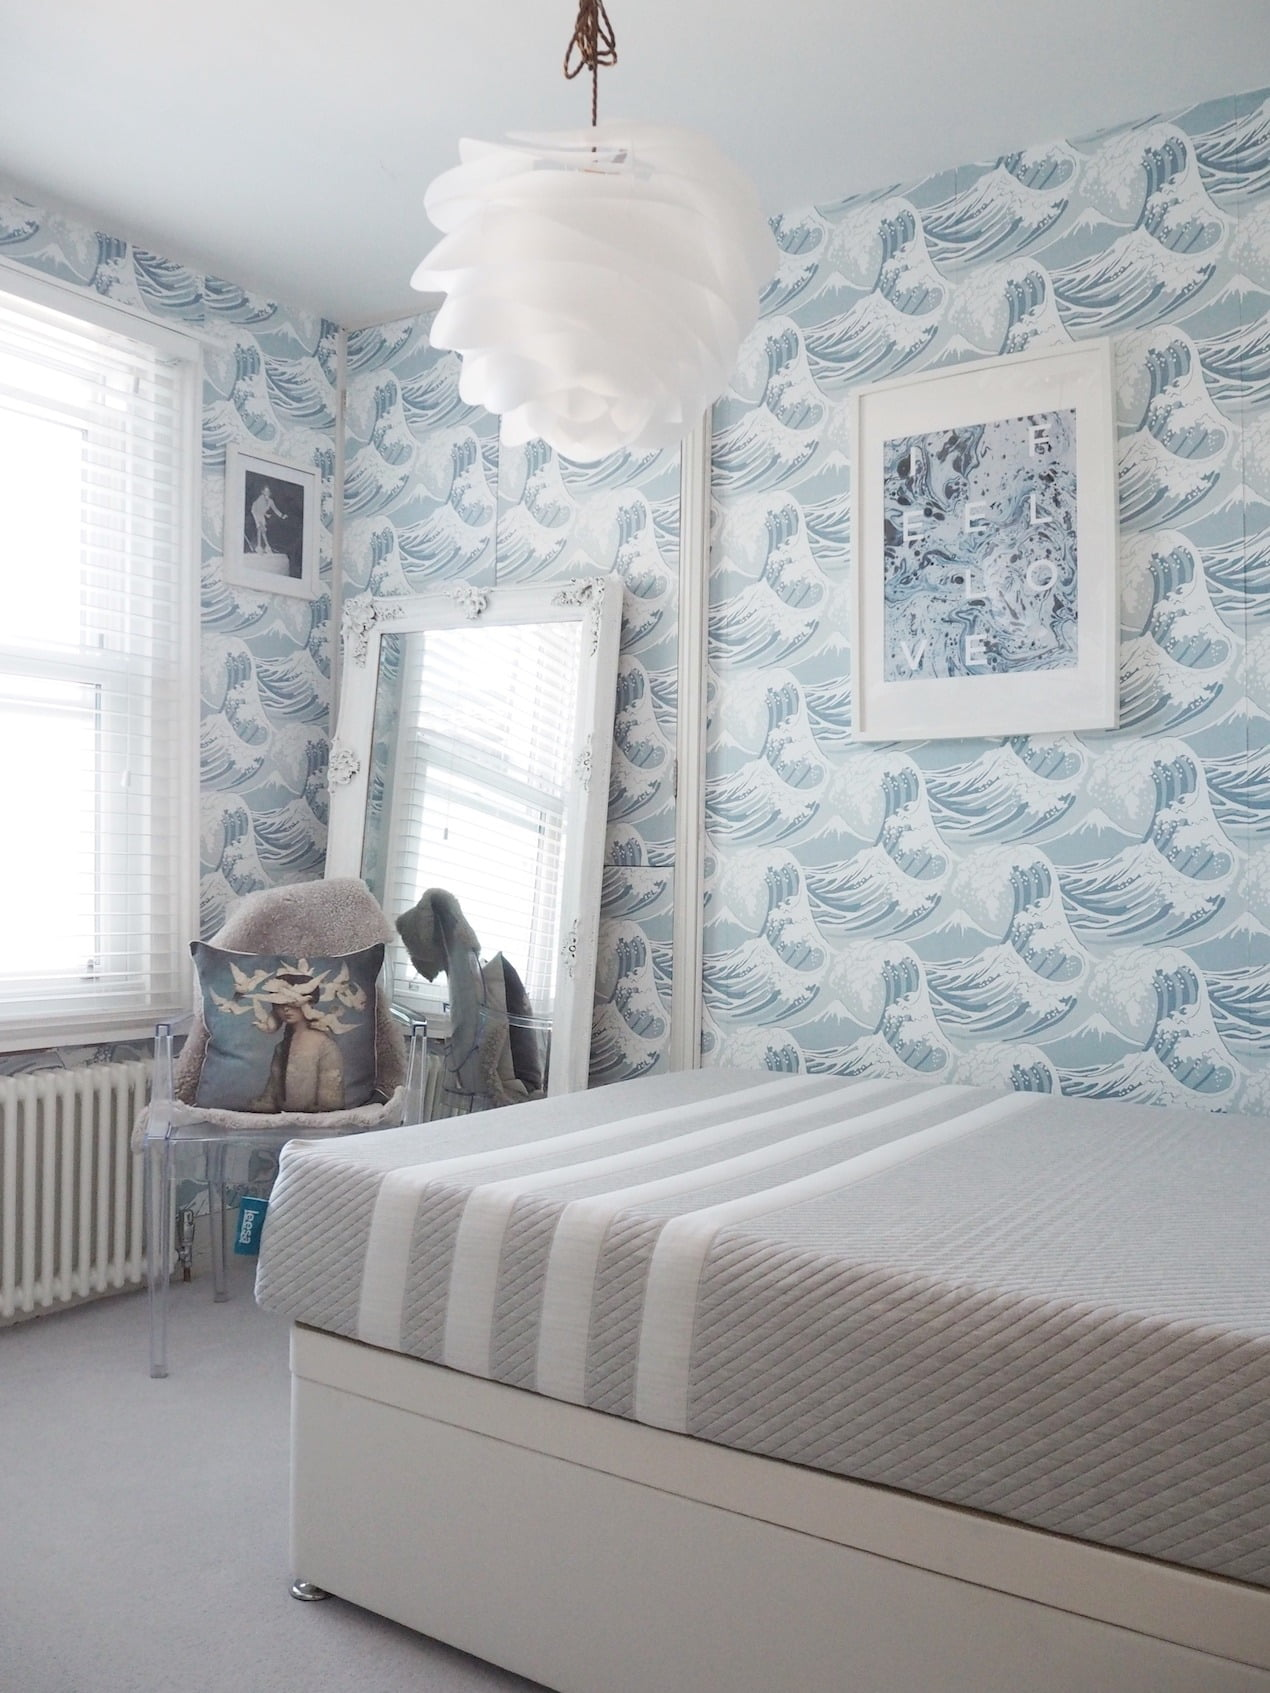 My Guest Bedroom Decorating Tips Video - WeLoveHome - Home